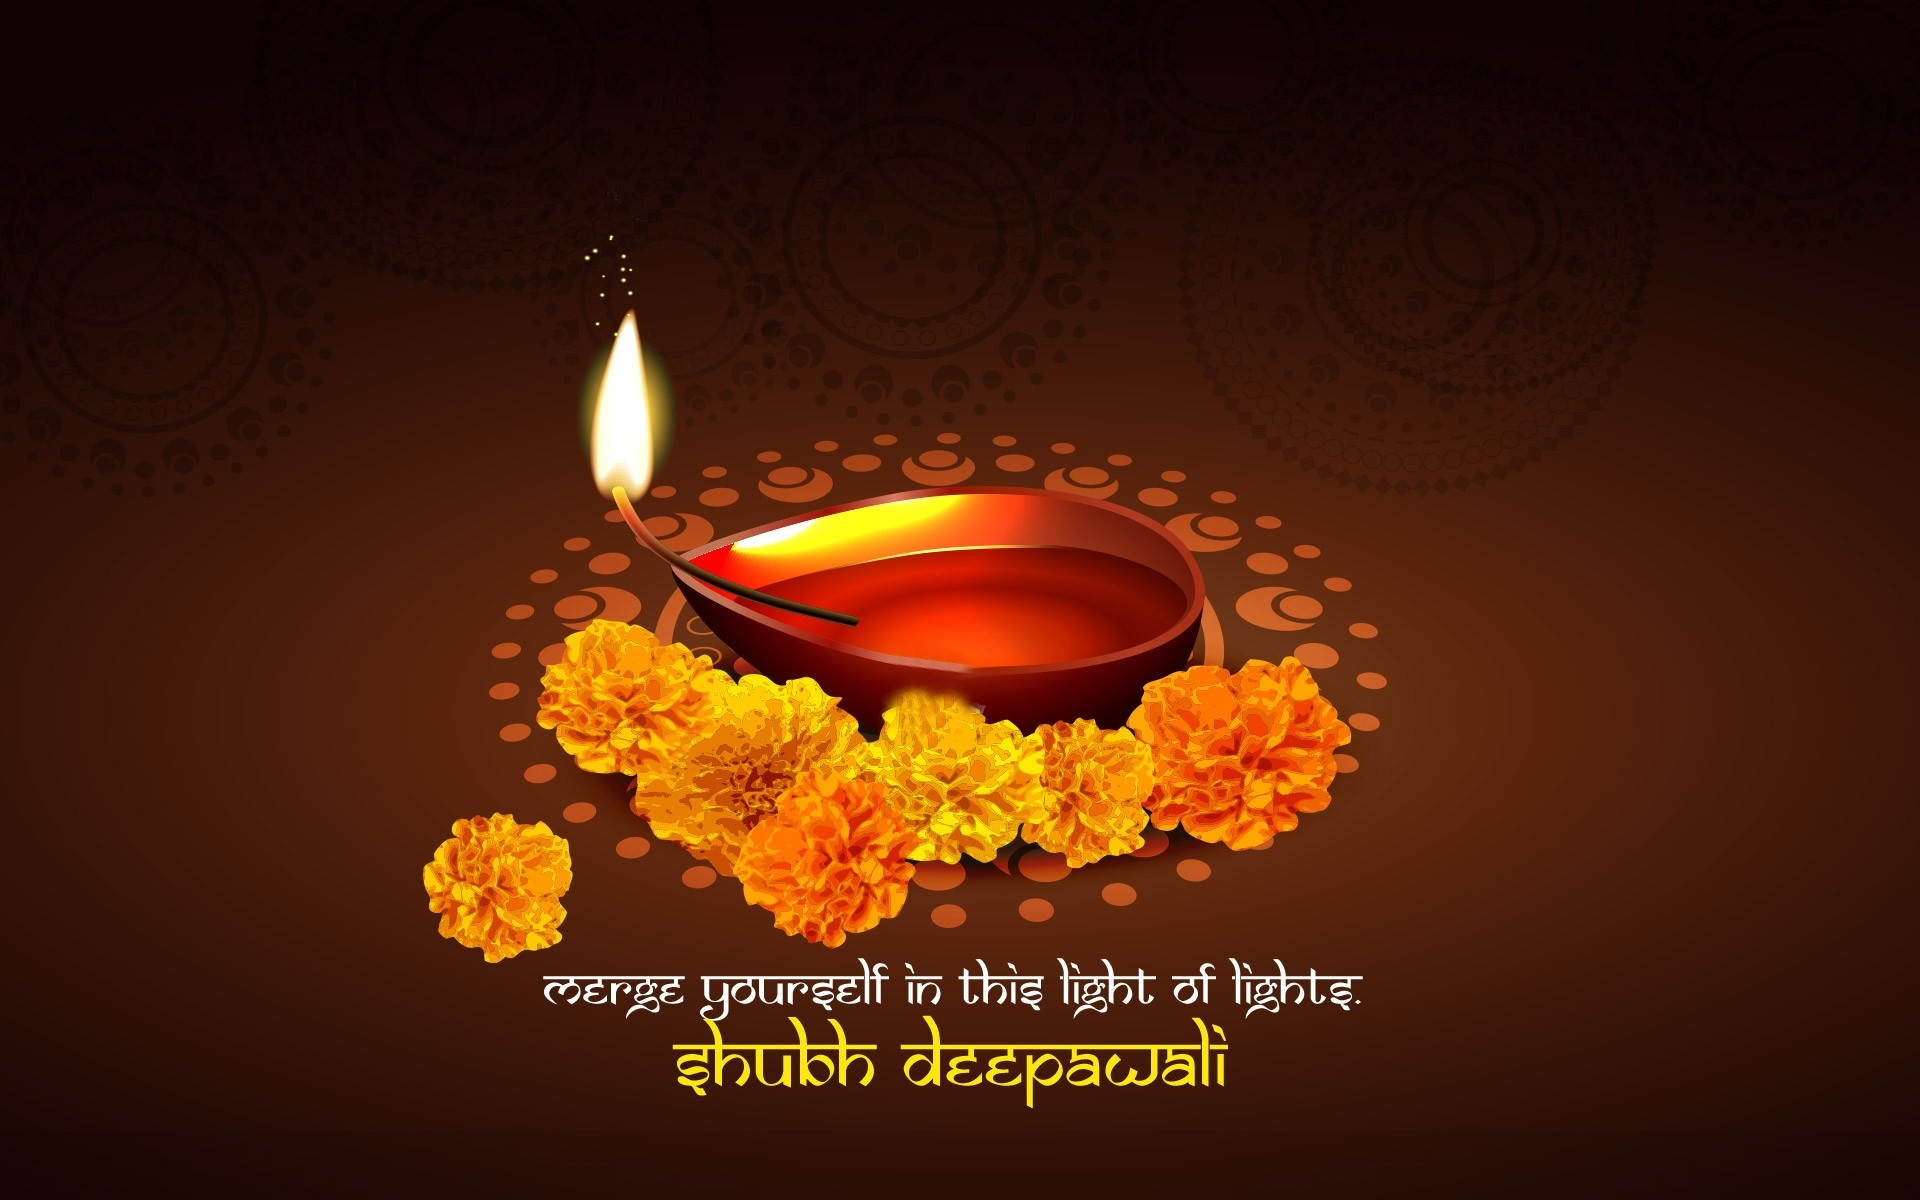 The Other Diwali Message 2014 Struggle For Hindu Existence